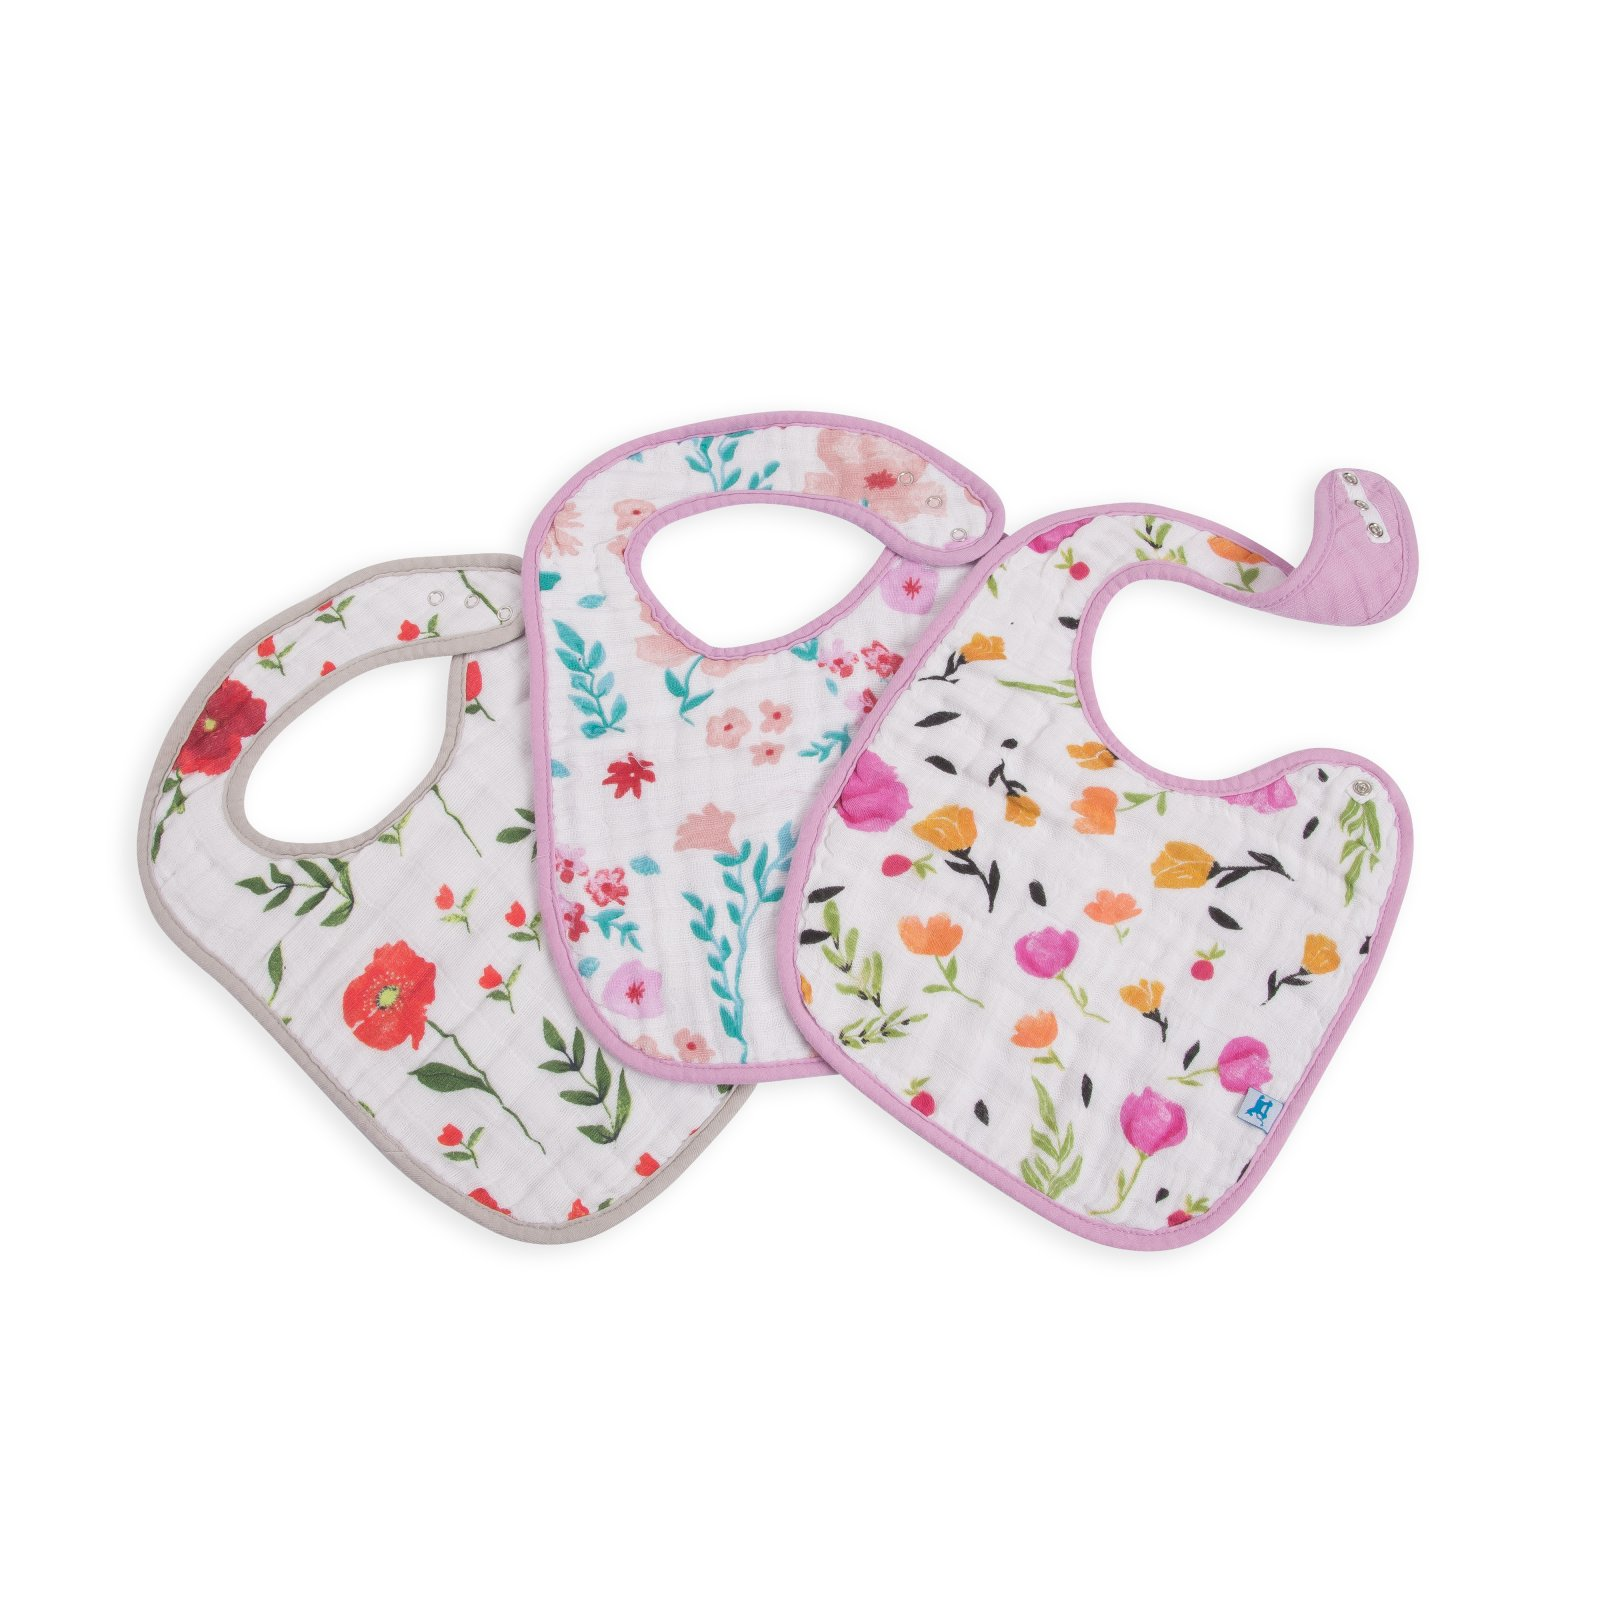 Little Unicorn Cotton Muslin Classic Bib 3 Pack - Floral Medley